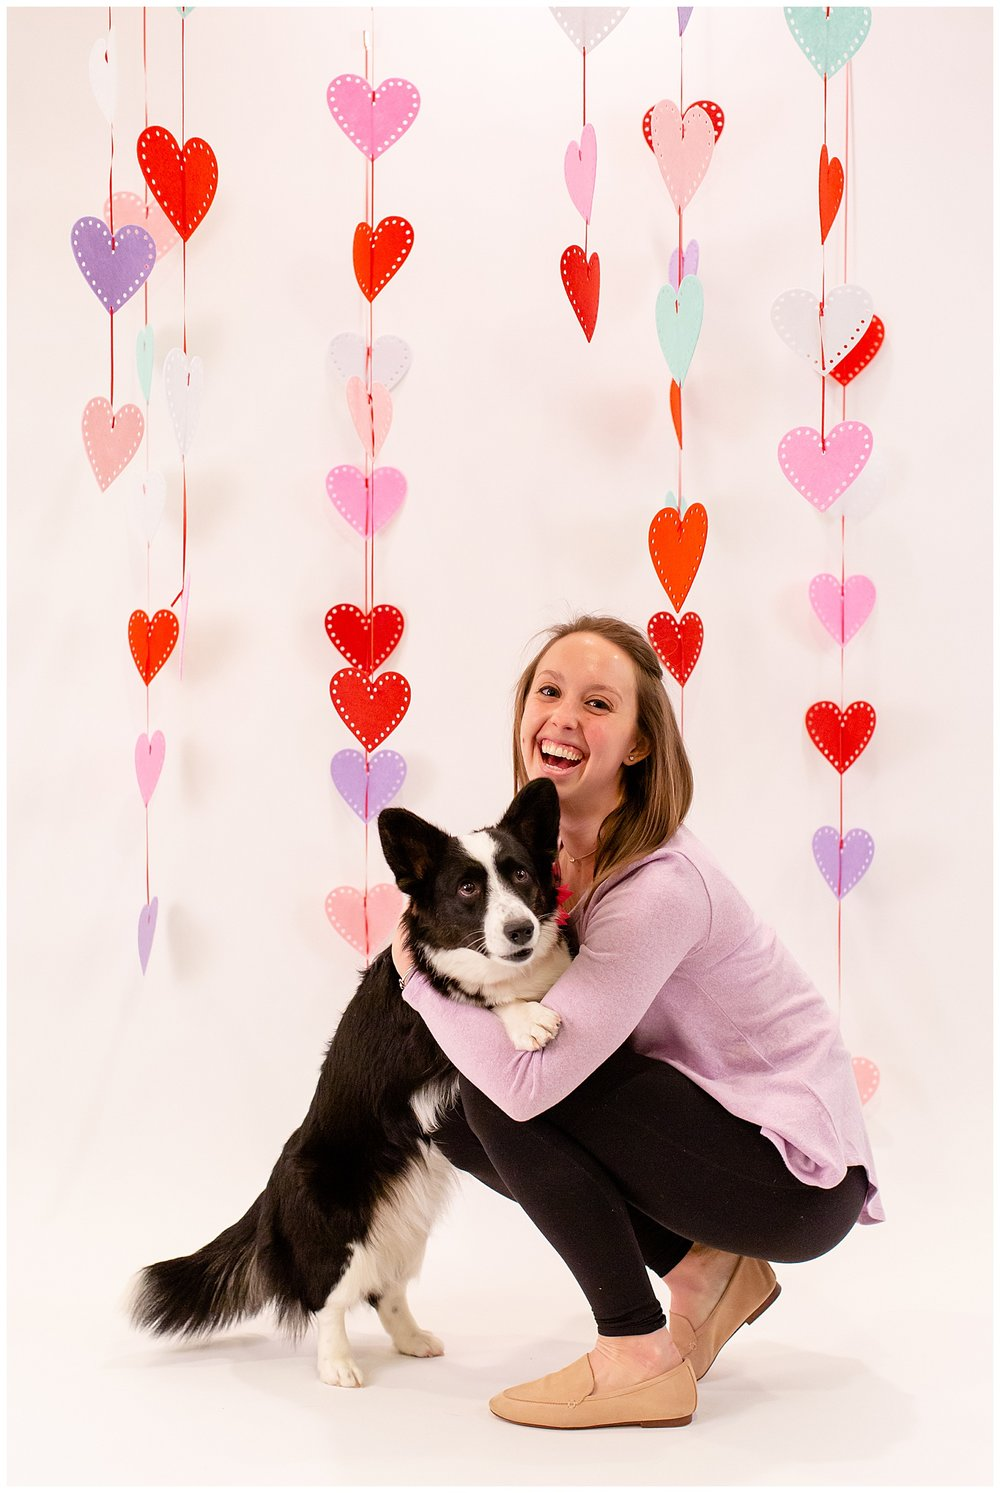 emily-belson-photography-couple-dog-valentine-photoshoot-09.jpg